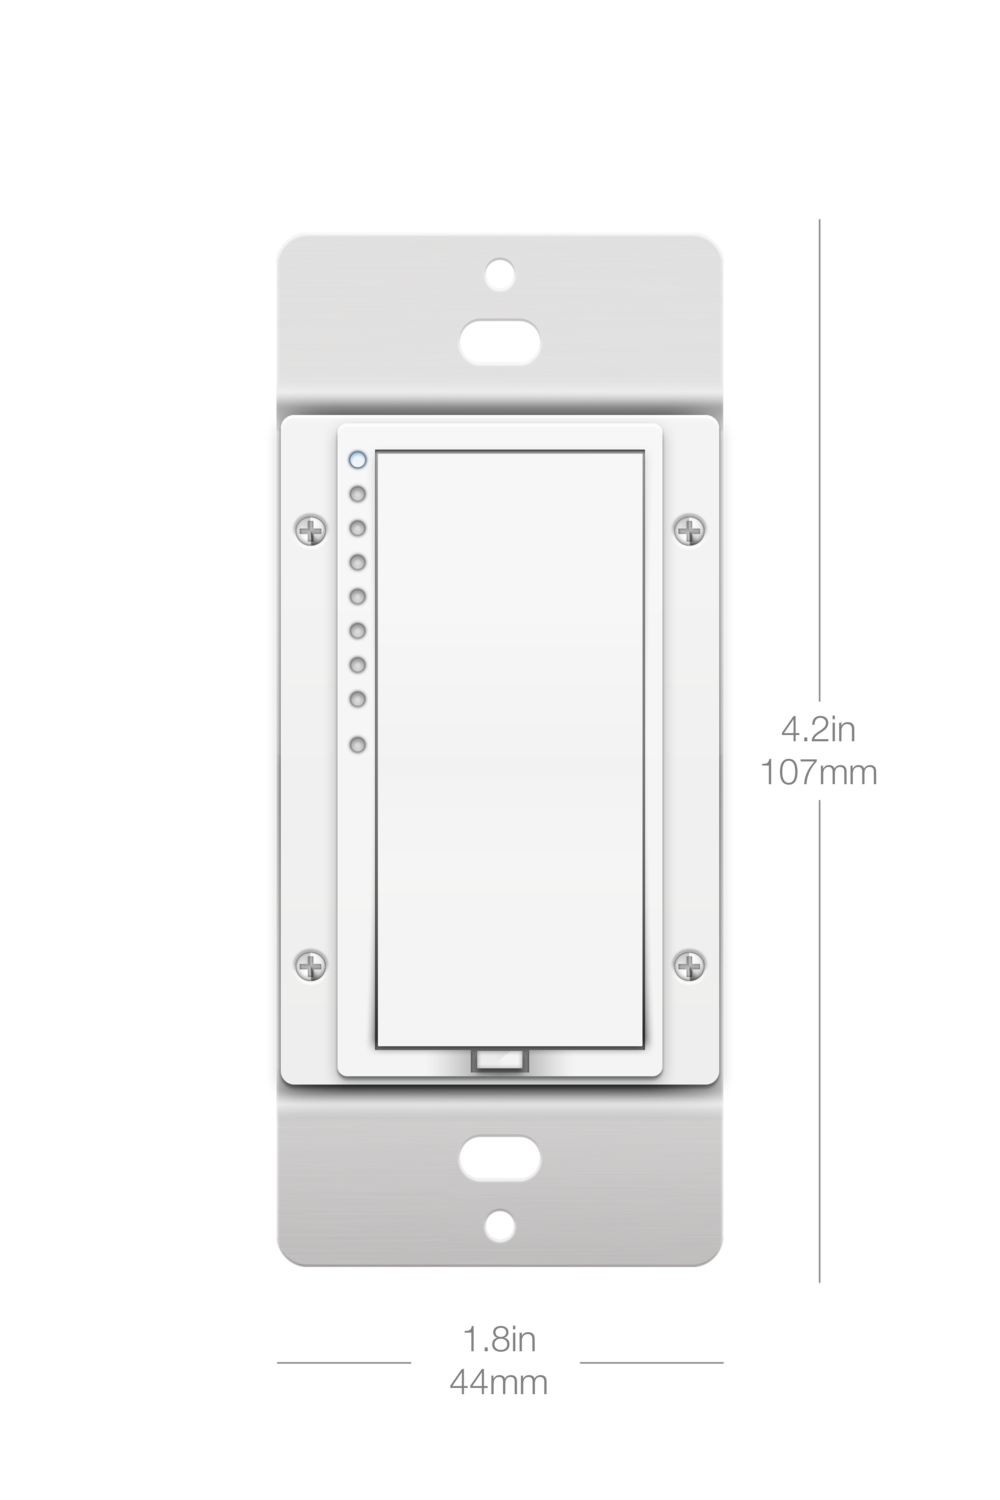 Wall Switches Insteon Four Way Switch Motion Sensor Dimensions On Off